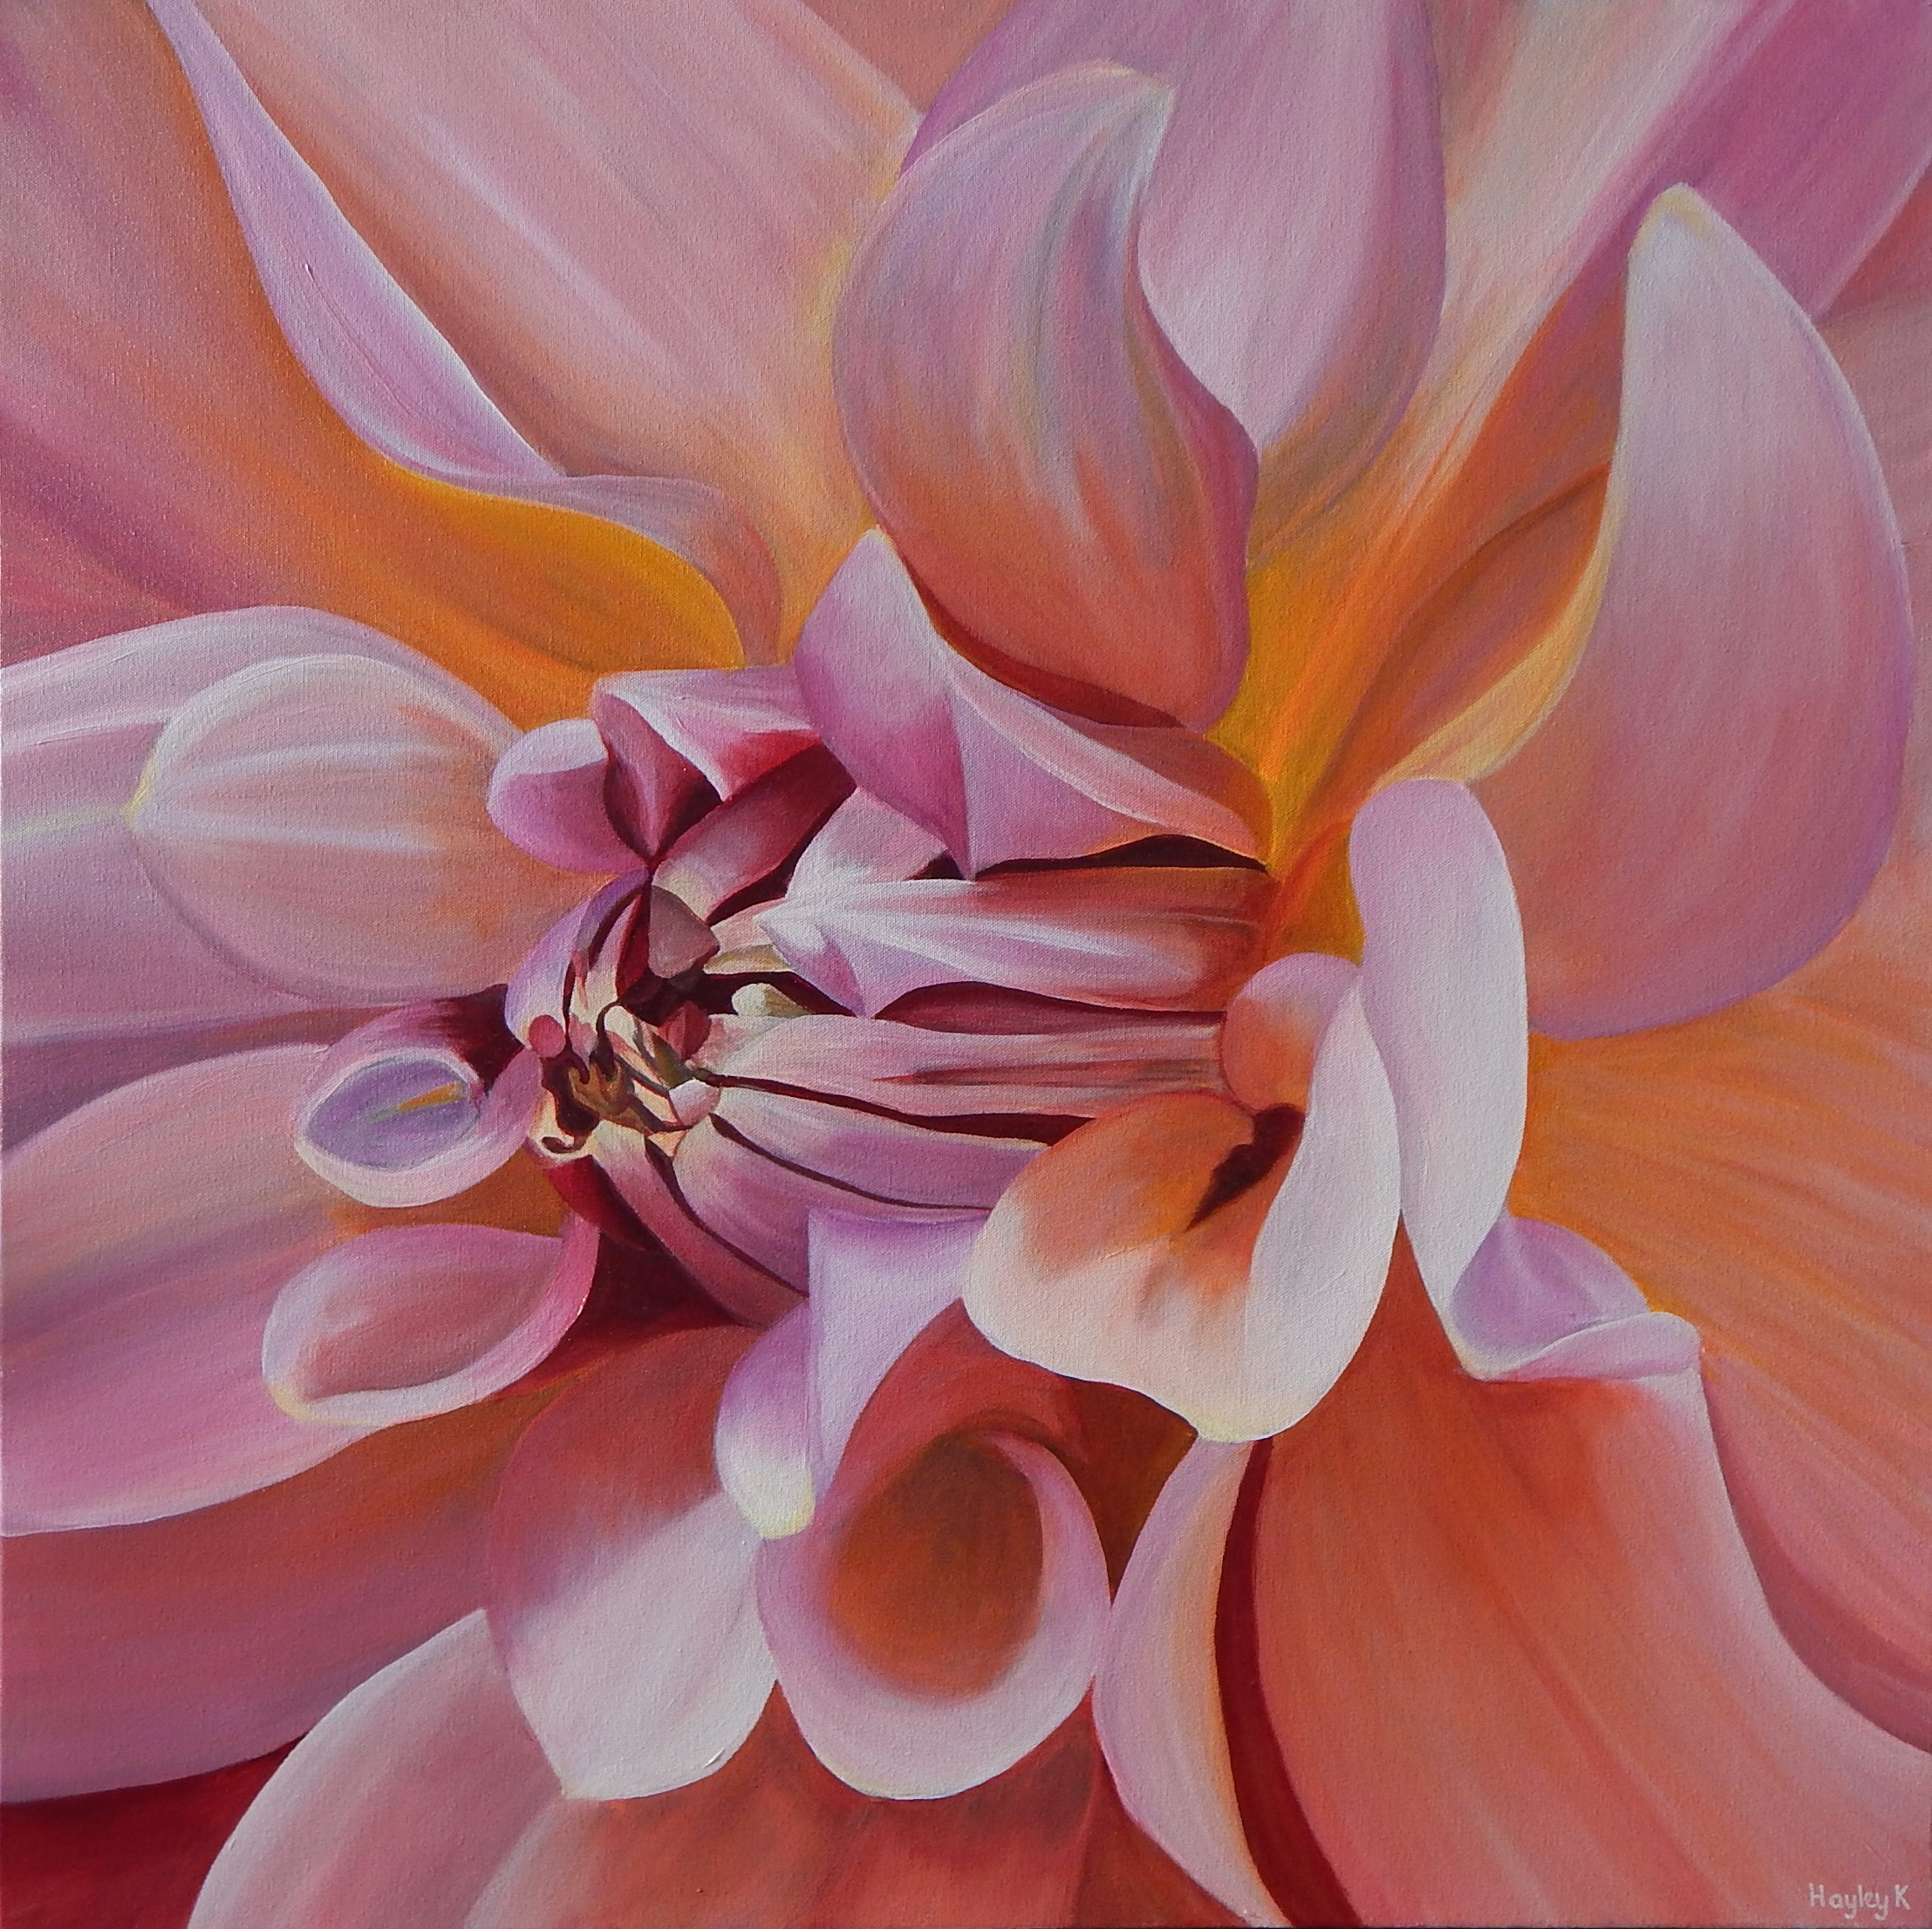 "Delirium 76cm (W) x 76cm (H) $800  I just love dahlias. They make me deliriously happy. ""Be deliriously happy or at least leave yourself open to be"" ~ Bill Parish (Anthony Hopkins) in meet Joe Black."